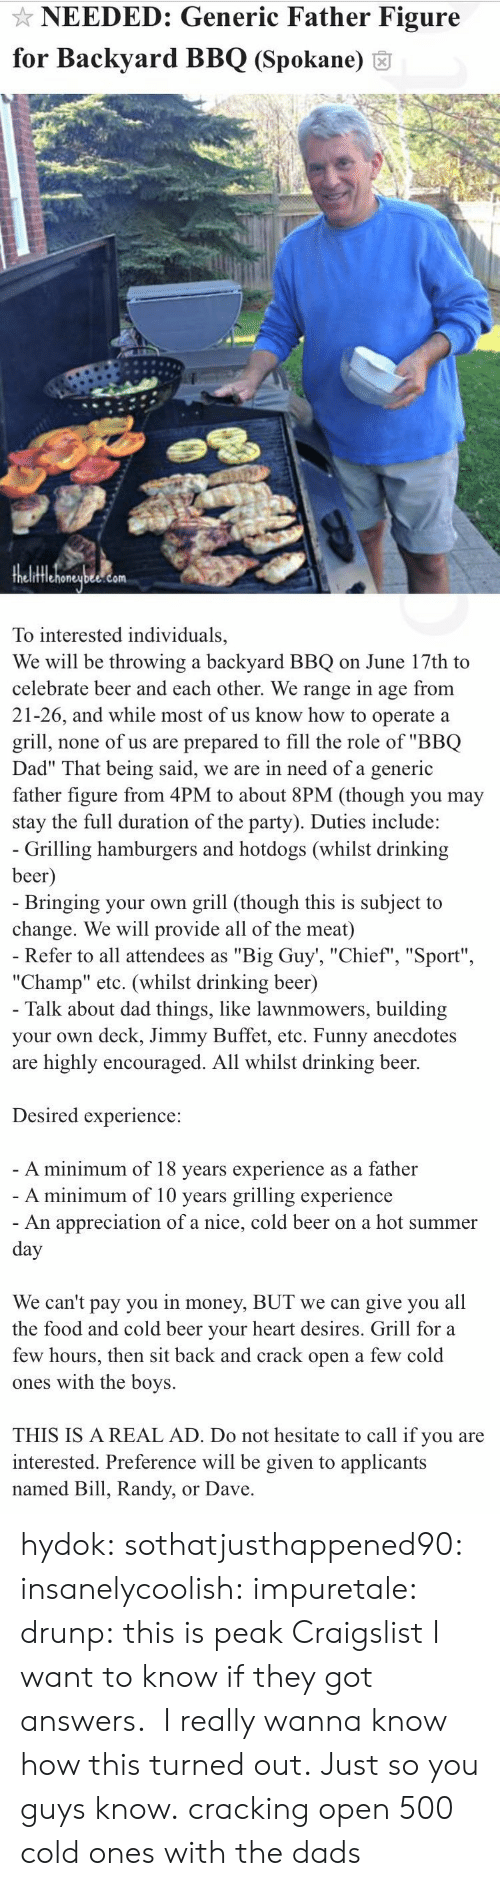 "drinking beer: NEEDED: Generic Father Figure  for Backyard BBQ (Spokane) 6  fflehoneubee.com  To interested individuals,  We will be throwing a backyard BBQ on June 17th to  celebrate beer and each other. We range in age from  21-26, and while most of us know how to operate a  grill, none of us are prepared to fill the role of ""BBQ  Dad"" That being said, we are in need of a generic  father figure from 4PM to about 8PM (though you may  stay the full duration of the party). Duties include:   Grilling hamburgers and hotdogs (whilst drinking  beer  Bringing your own grill (though this is subject to  change. We will provide all of the meat)  Refer to all attendees as ""Big Guy', ""Chief"", ""Sport""  ""Champ"" etc. (whilst drinking beer)  Talk about dad things, like lawnmowers, building  your own deck, Jimmy Buffet, etc. Funny anecdotes  are highly encouraged. All whilst drinking beer.  Desired experience:  A minimum of 18 vears experience as a father  A minimum of 10 years grilling experience  An appreciation of a nice, cold beer on a hot summer  We can't pay you in money, BUT we can give you all  the food and cold beer vour heart desires. Grill for a  few hours, then sit back and crack open a few cold  ones with the boys.  THIS IS A REAL AD. Do not hesitate to call if you are  interested. Preference will be given to applicants  named Bill, Randy, or Dave hydok: sothatjusthappened90:  insanelycoolish:   impuretale:  drunp: this is peak Craigslist I want to know if they got answers.   I really wanna know how this turned out.               Just so you guys know.  cracking open 500 cold ones with the dads"